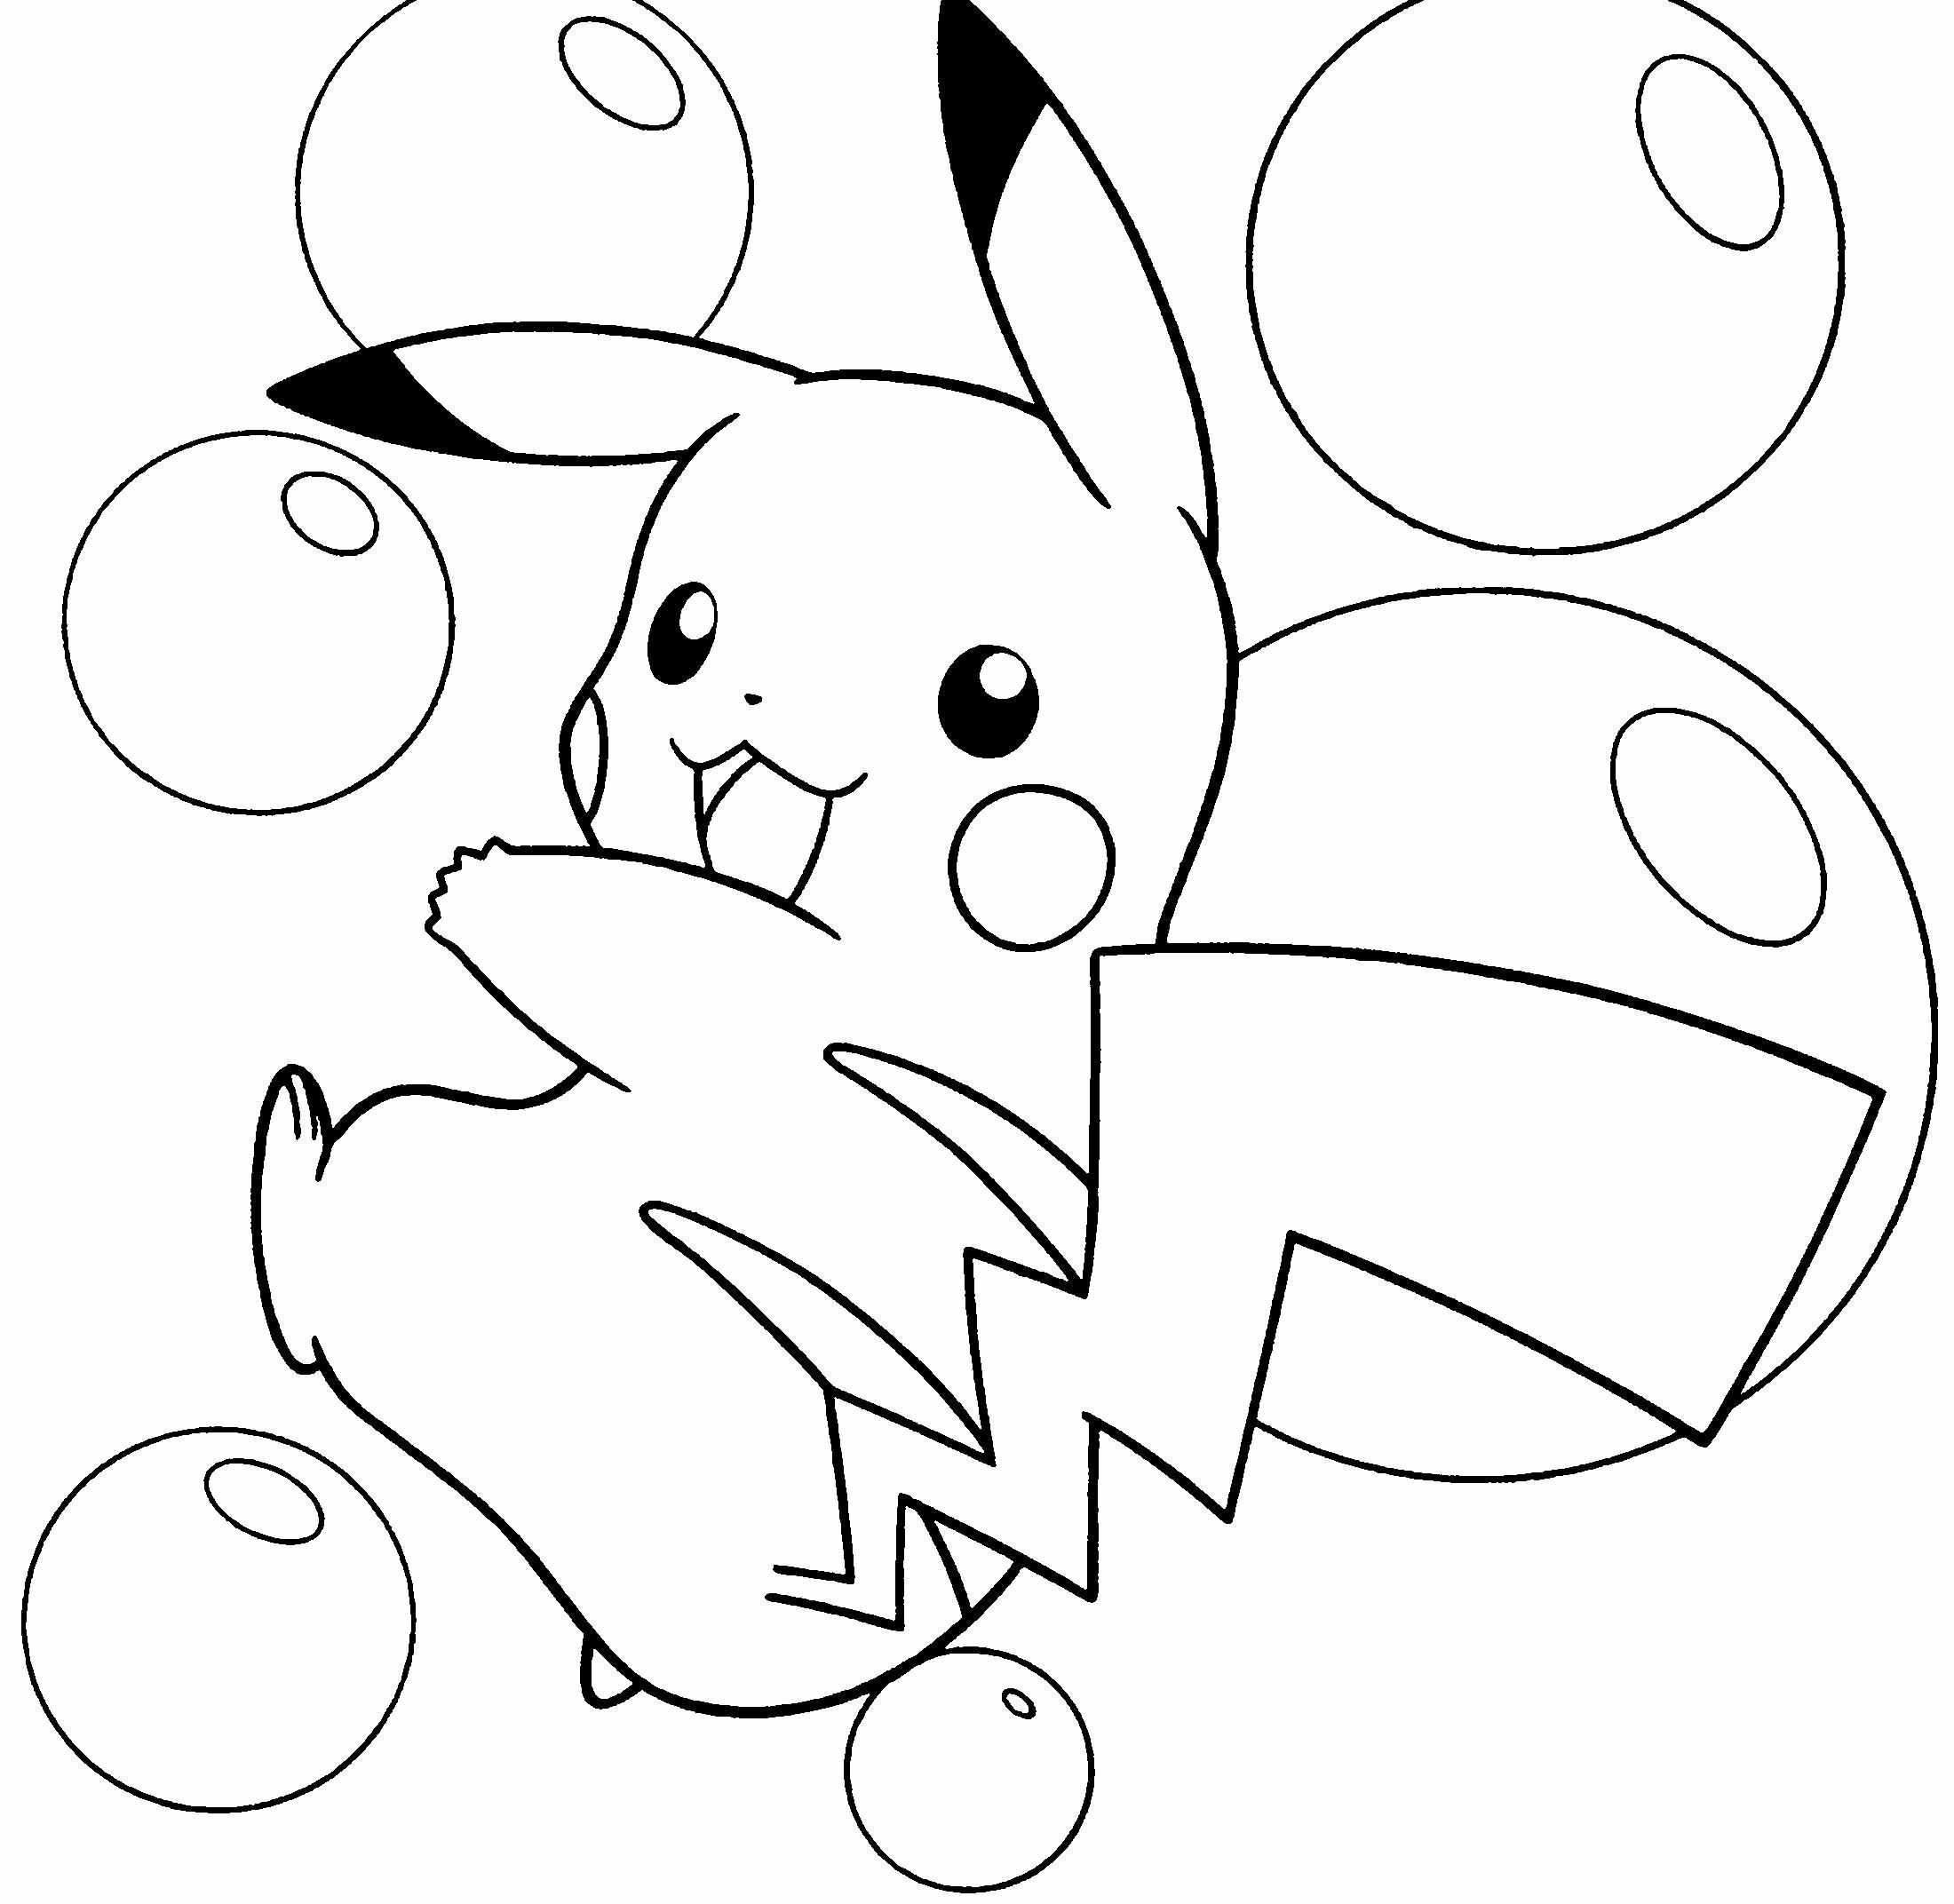 Surfing Pikachu Coloring Page Pikachu Coloring Page Pokemon